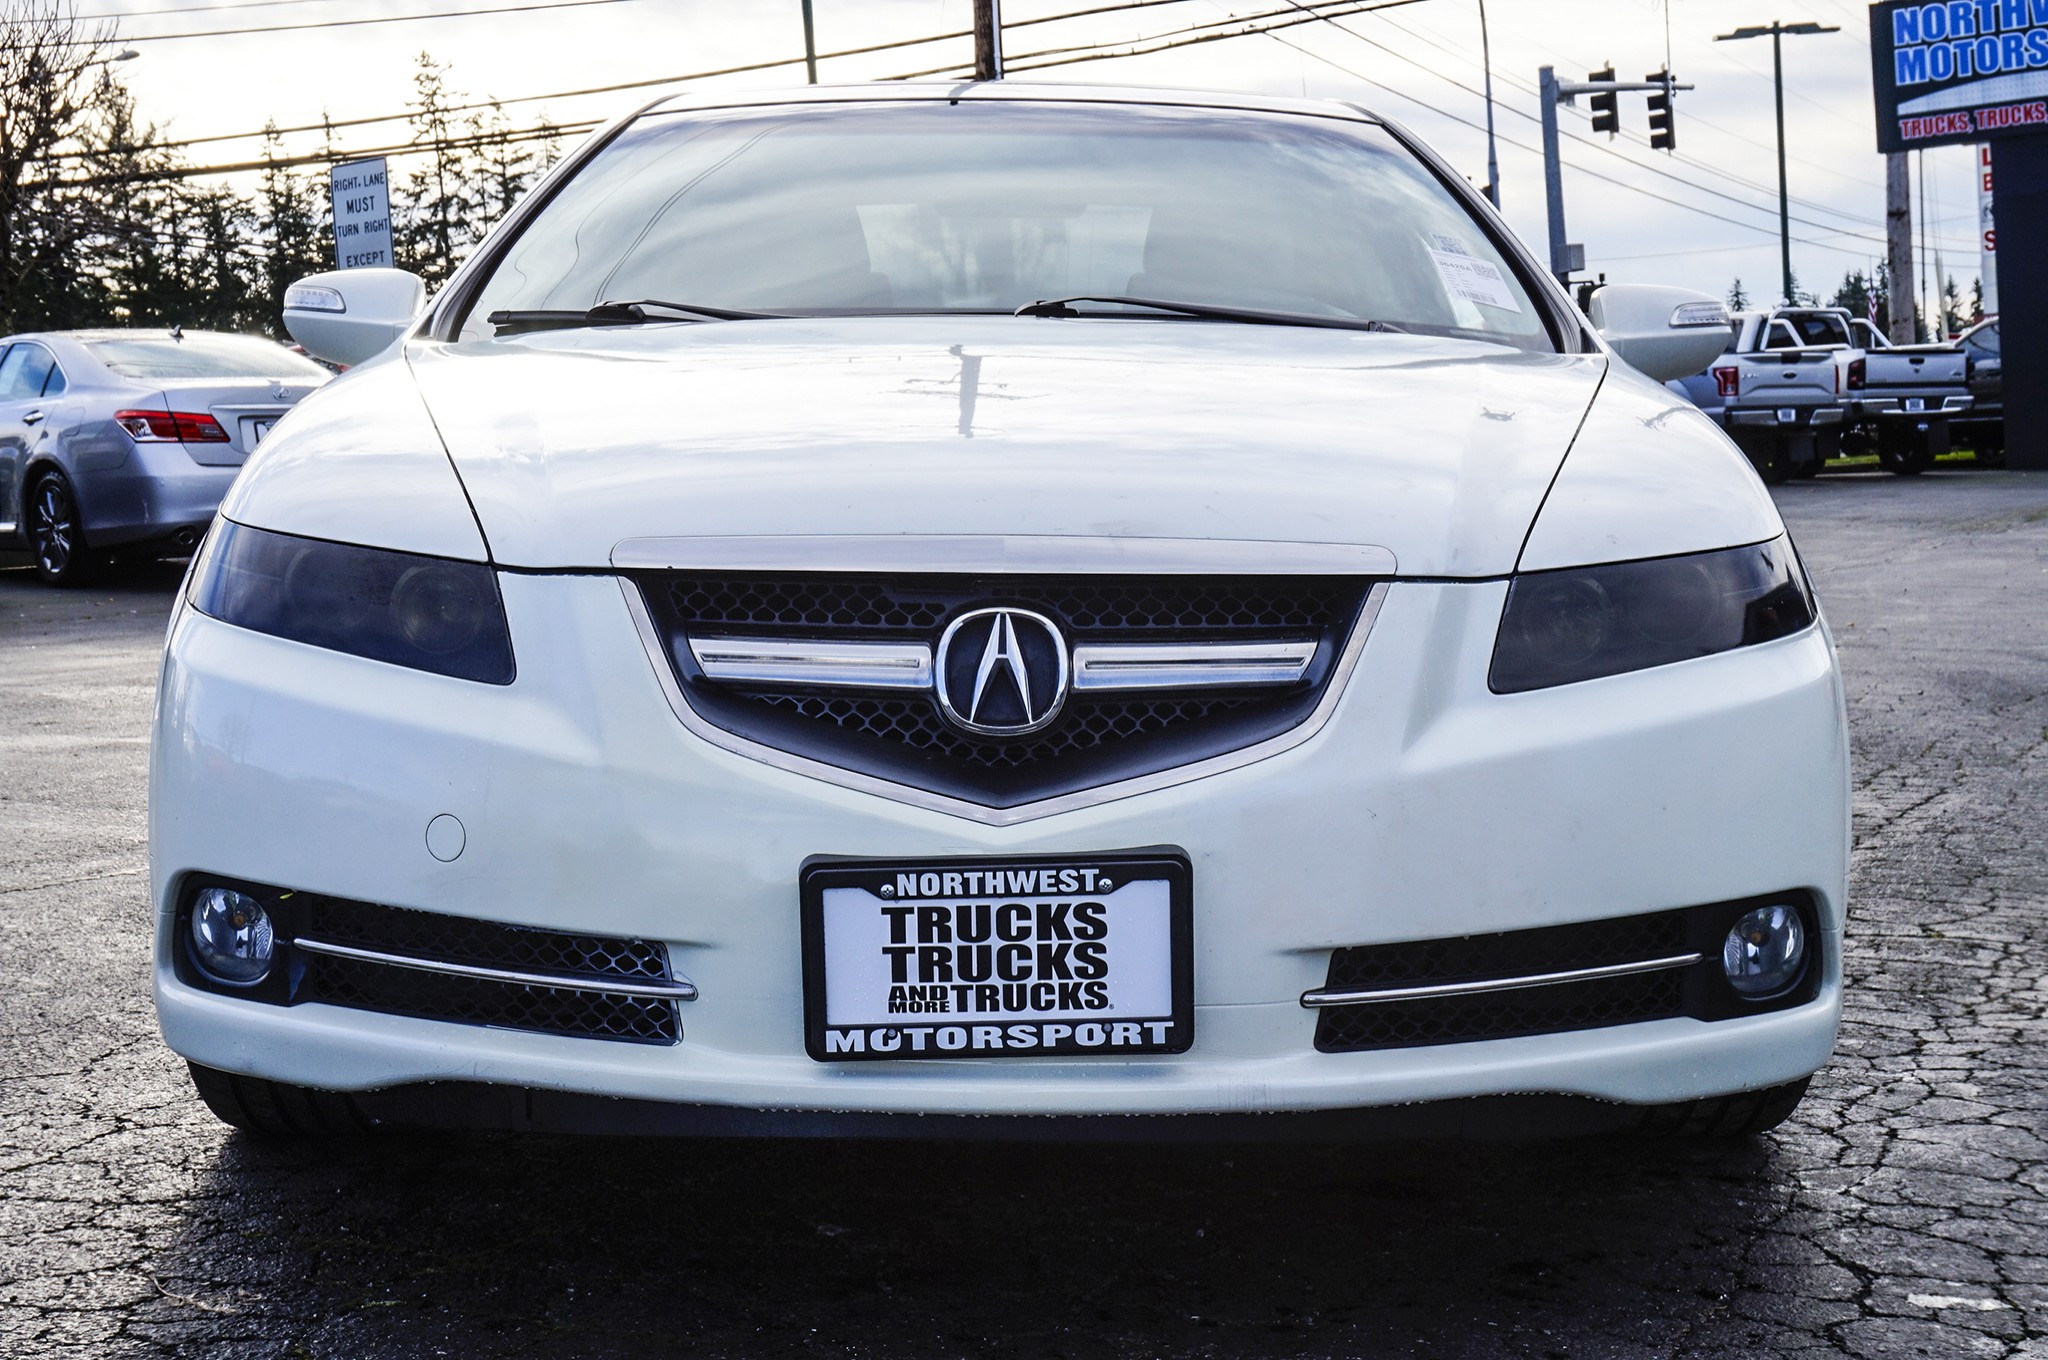 salvage s lot acura for vegas online title tl carfinder in on auctions silver las type auto sale nv en copart